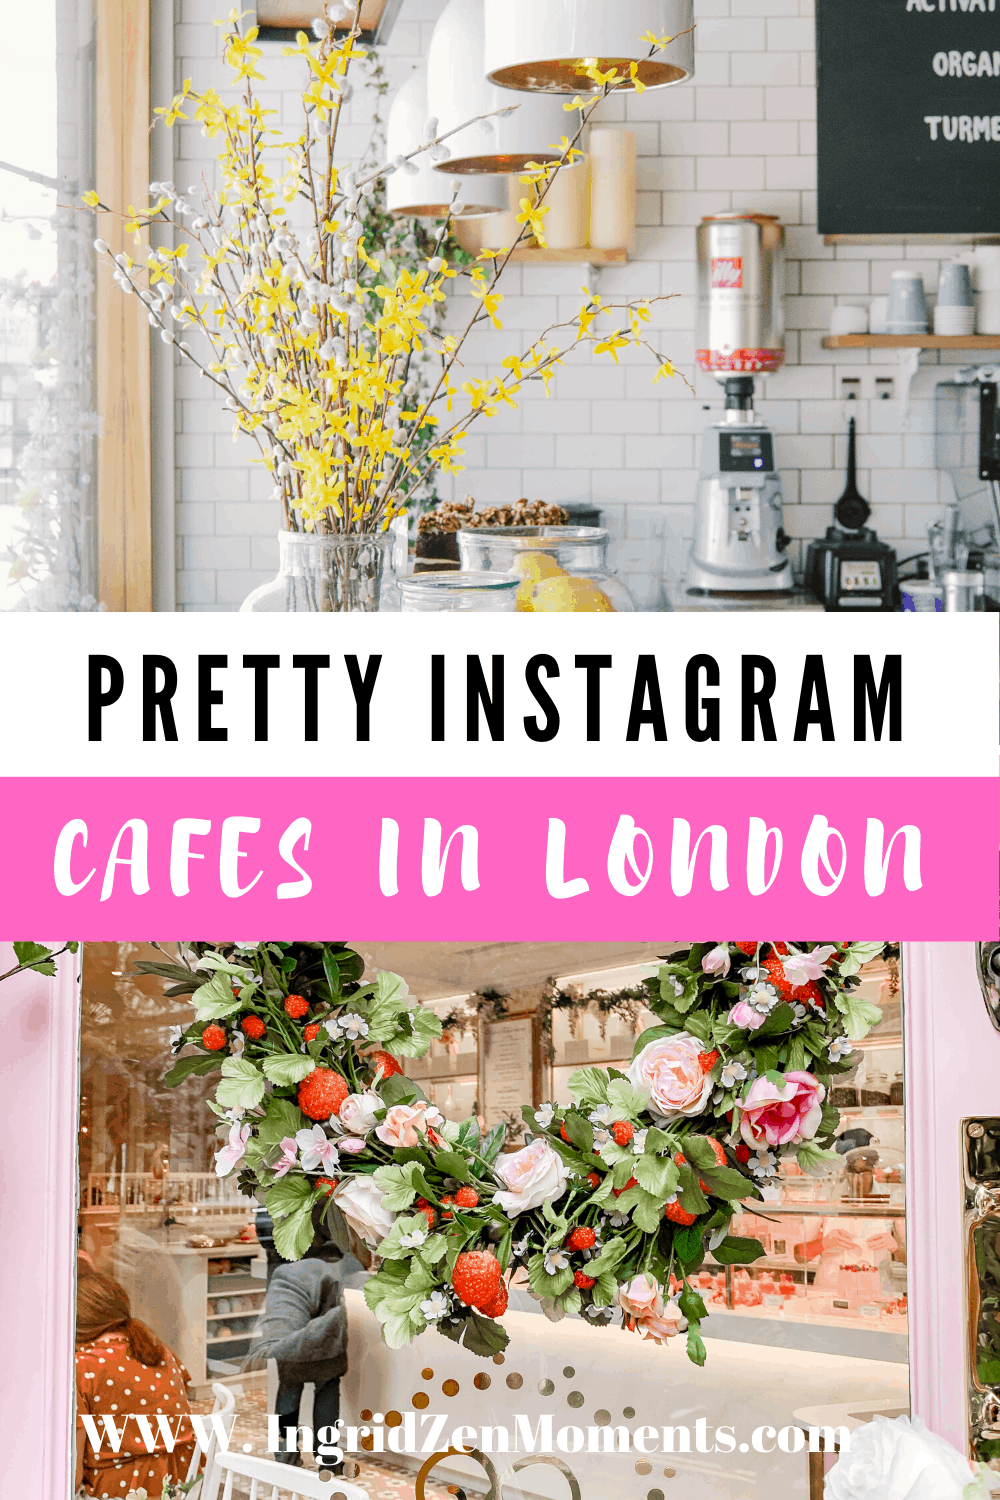 Prettiest cafes in London with the most pink vibes and flower-filled cafes in London. See this list of photo paradise places in London for your next London vacation, and head over to take the most beautiful London photography some of the most famous instagram spots in London. | Cafes in London | prettiest cafes in London | #travel #pretty #pinkplace #londontravel #travel